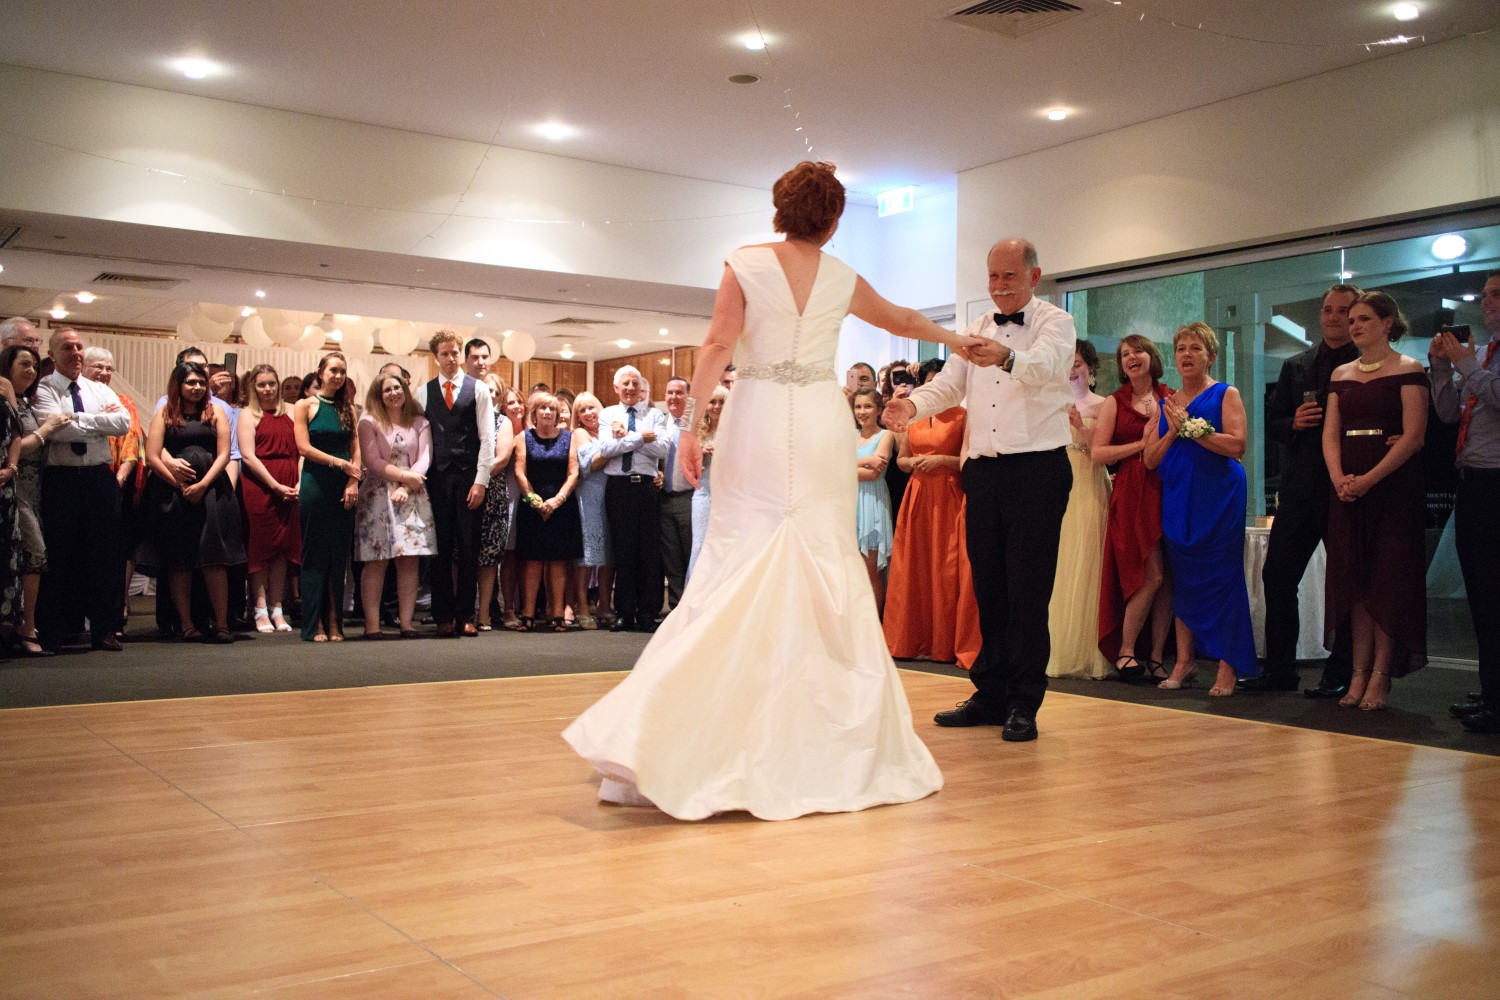 096-perth-wedding-reception-mount-lawley-golf